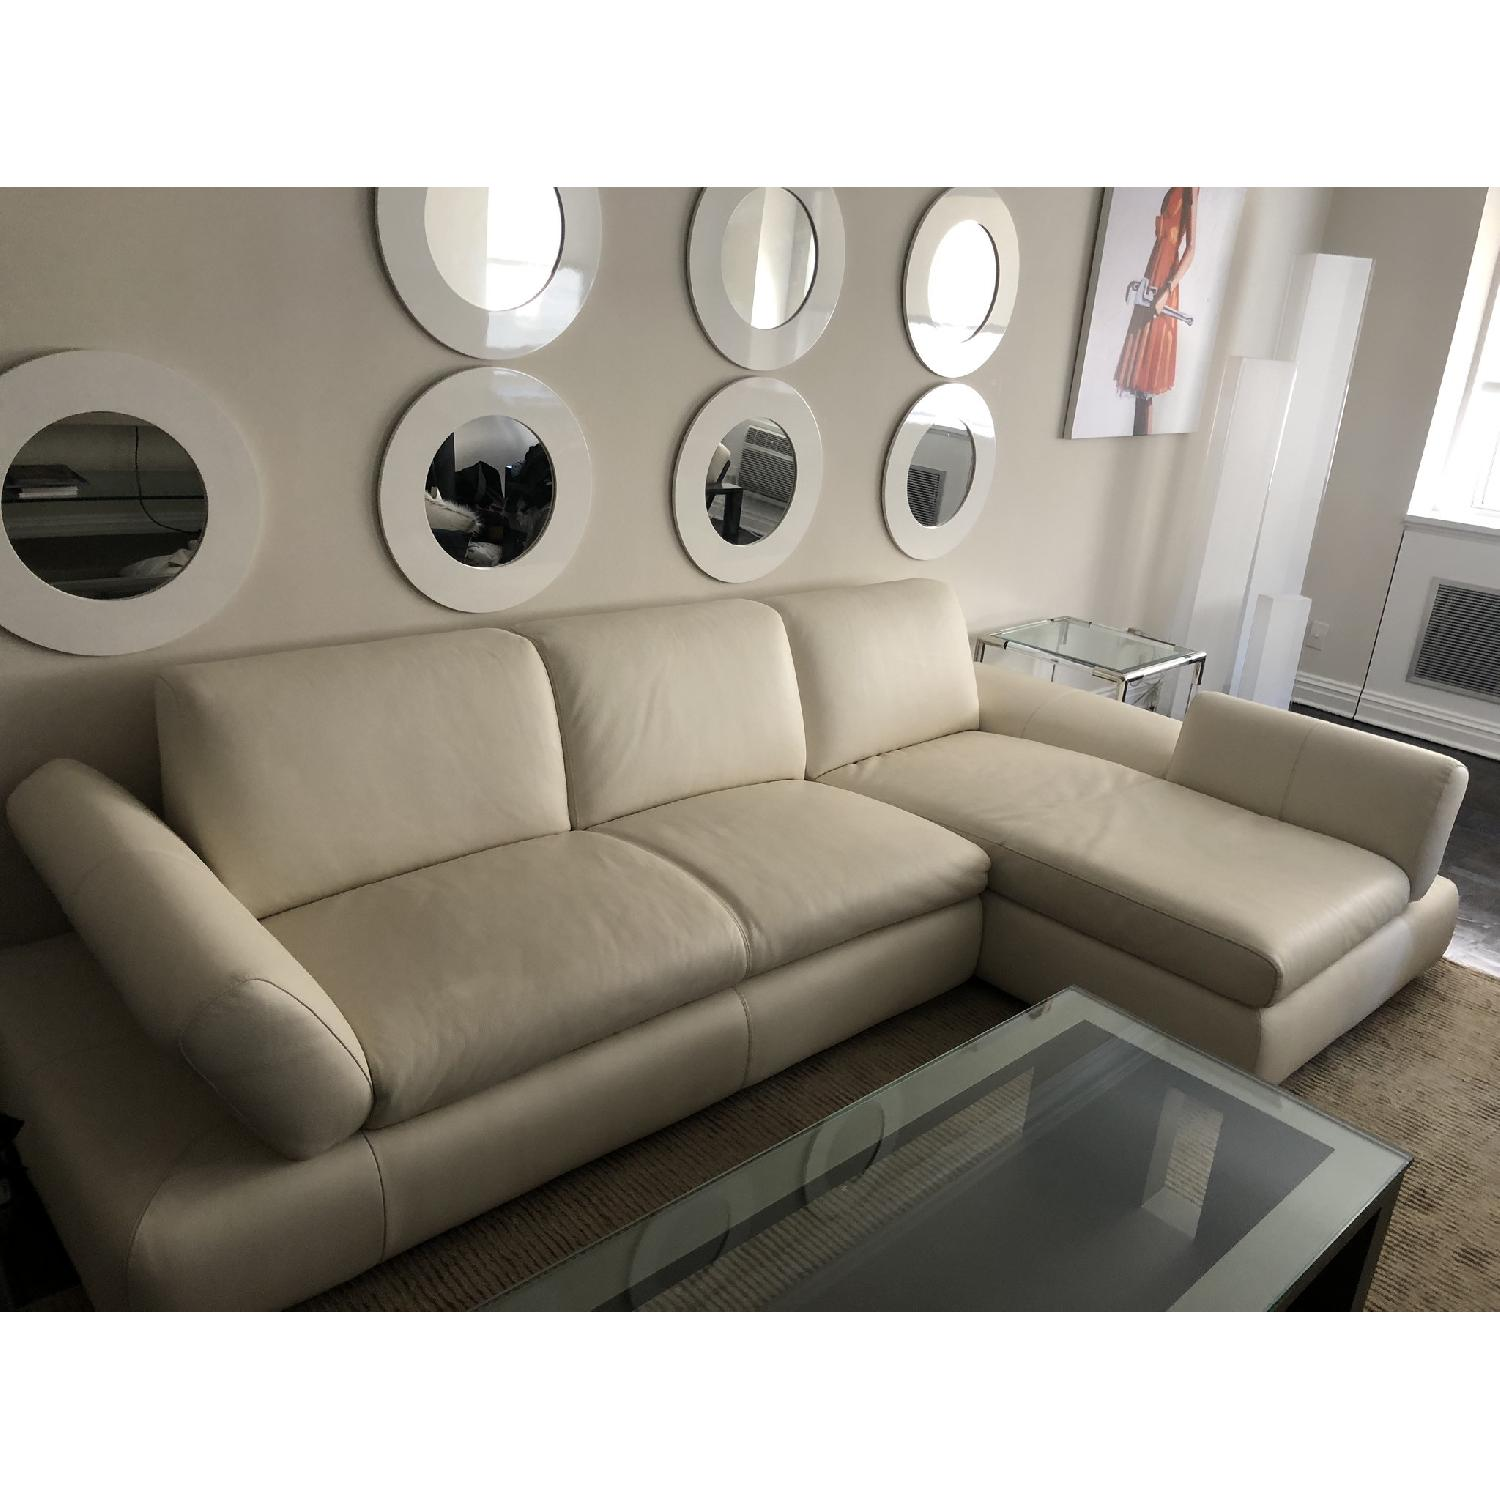 Nicoletti Home White Leather 2-Piece Sectional Sofa - image-3